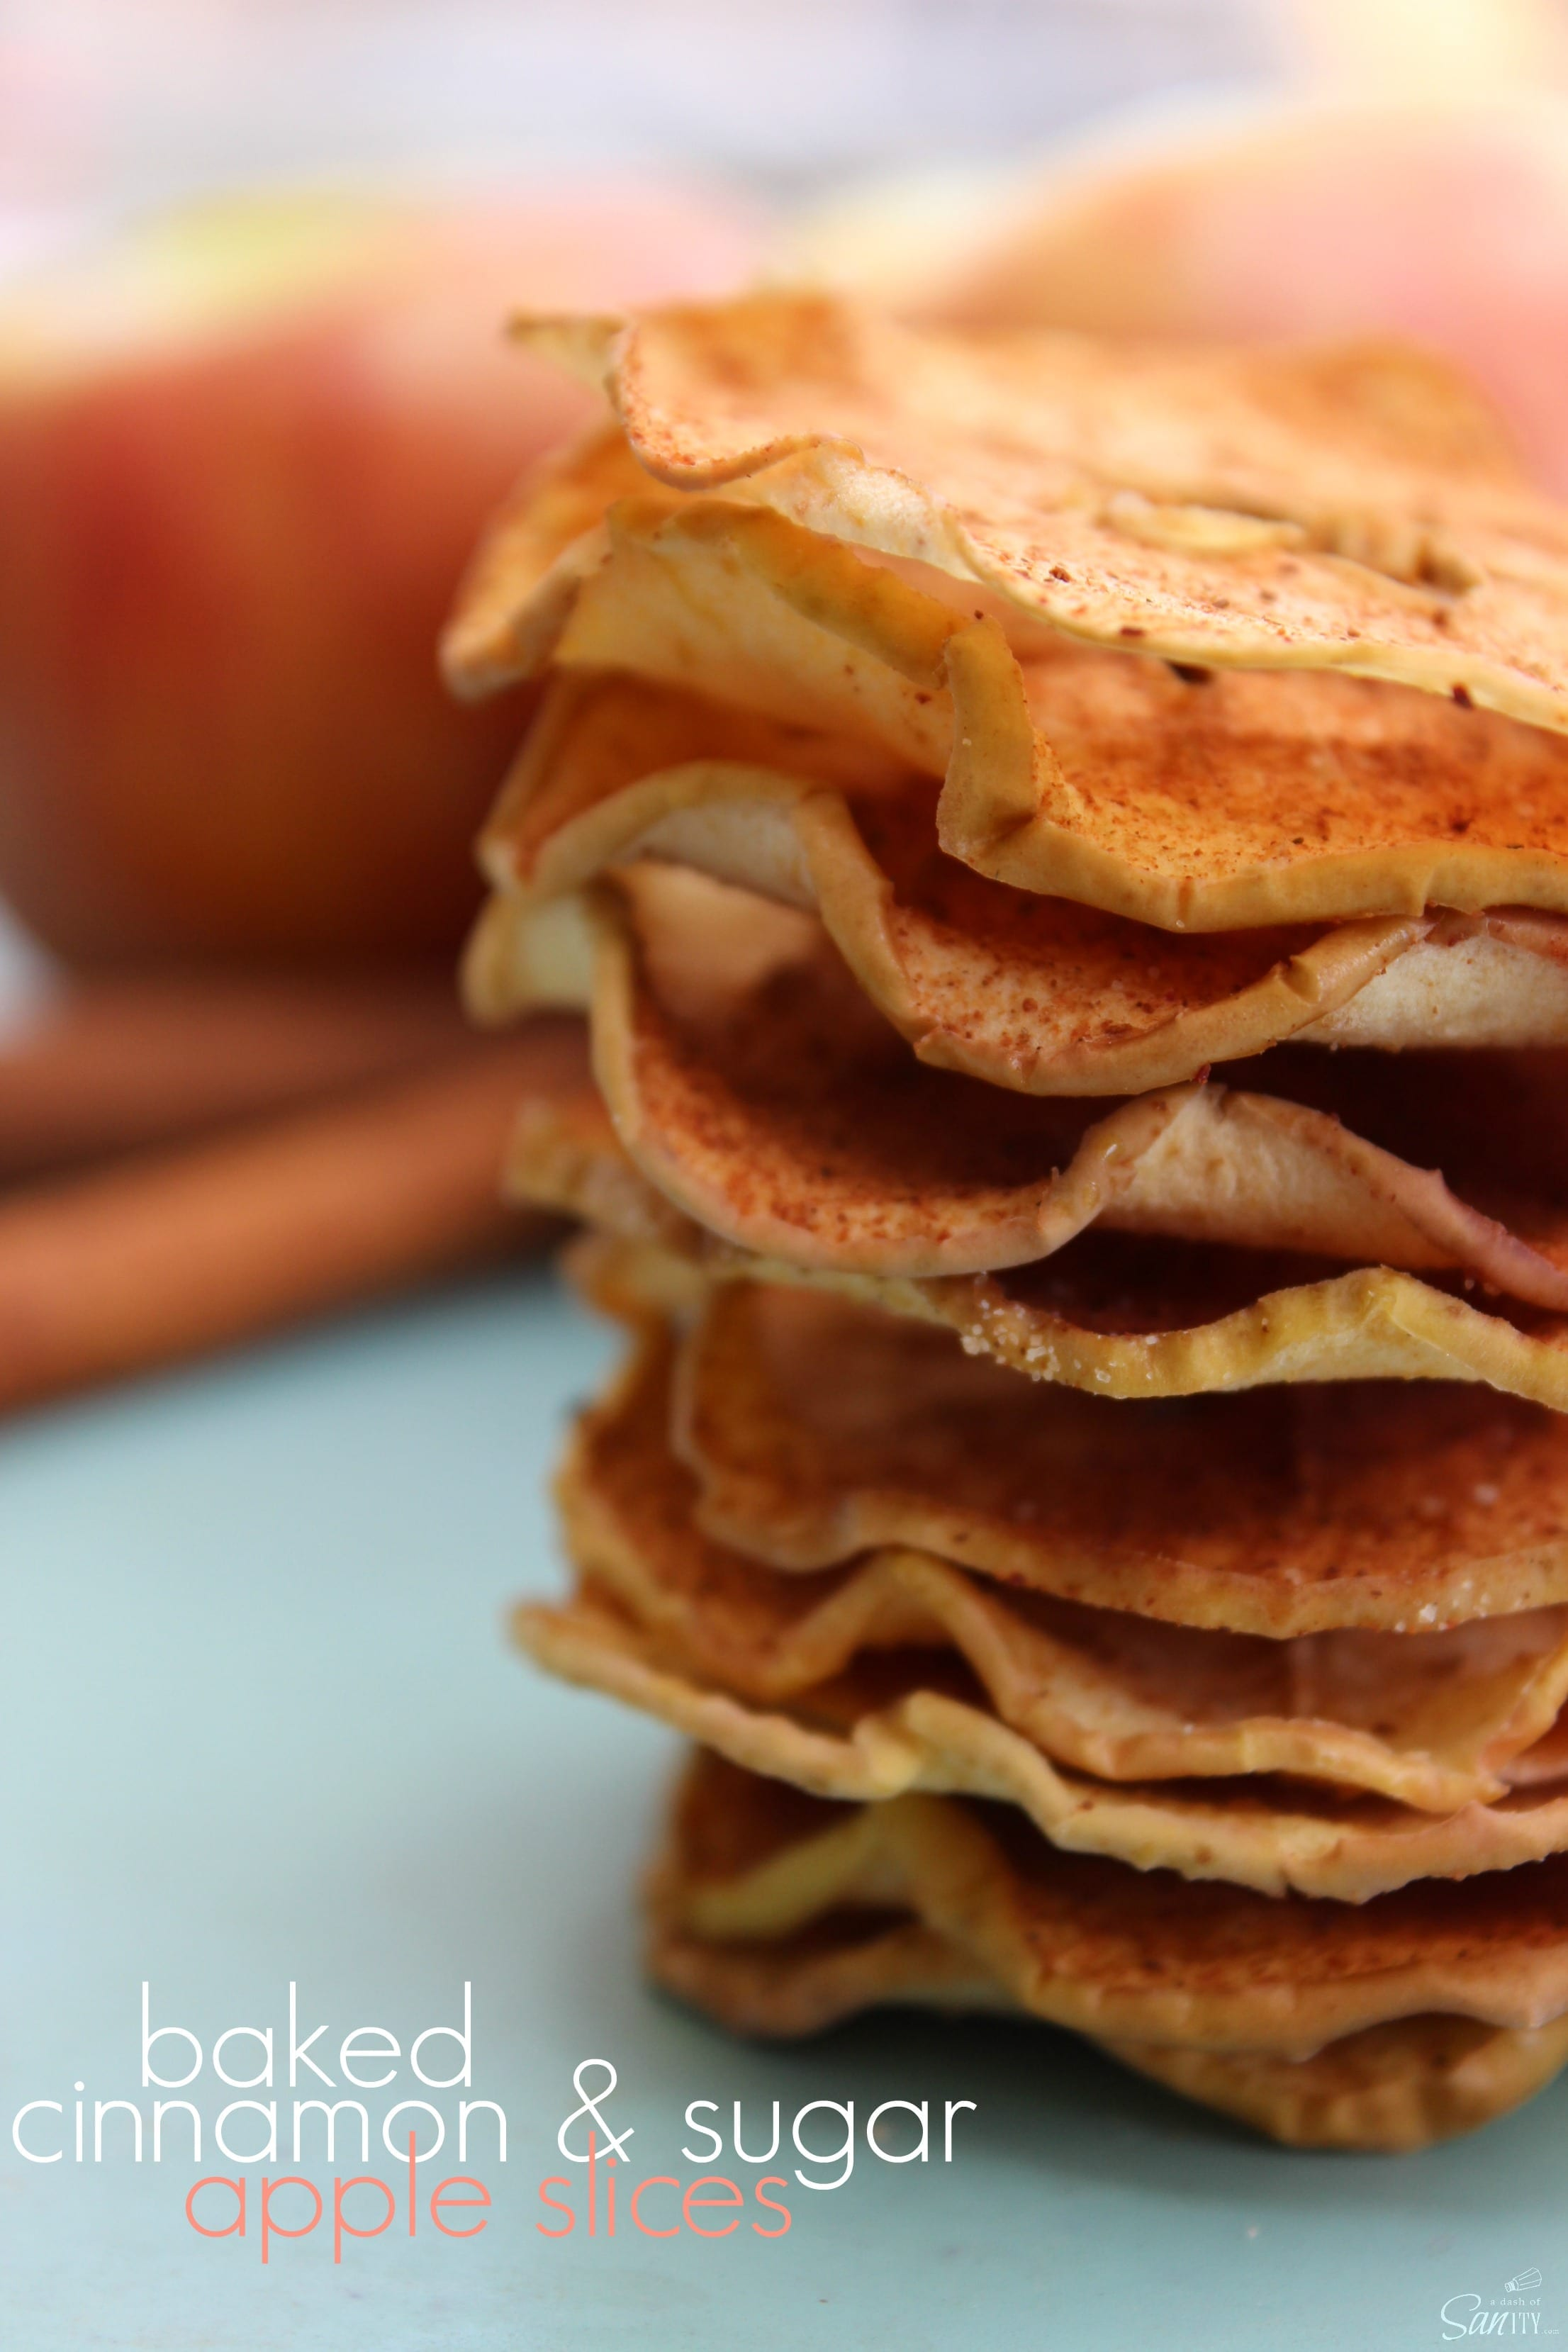 Baked Cinnamon Sugar Apple Slices - healthy, crispy and easy to pack in a lunchbox!